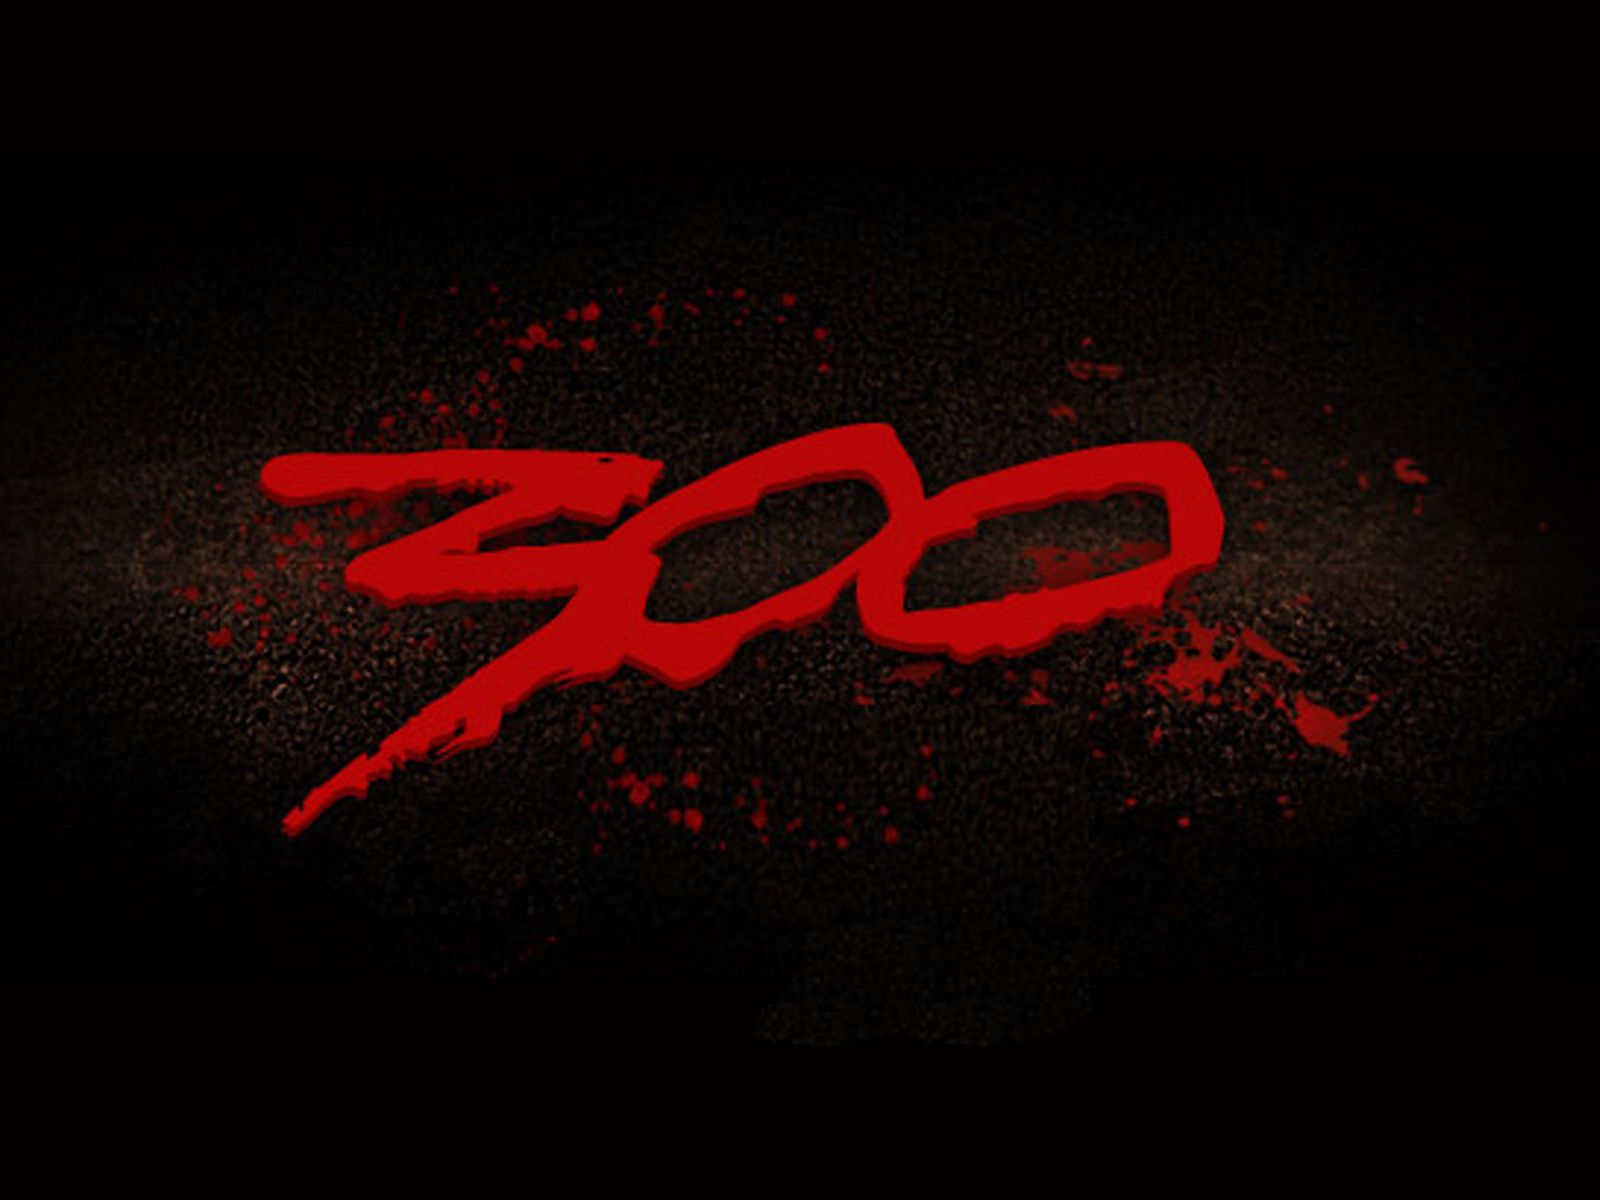 300 Logo | Movies & Series Logos | Pinterest | Logos and Movie